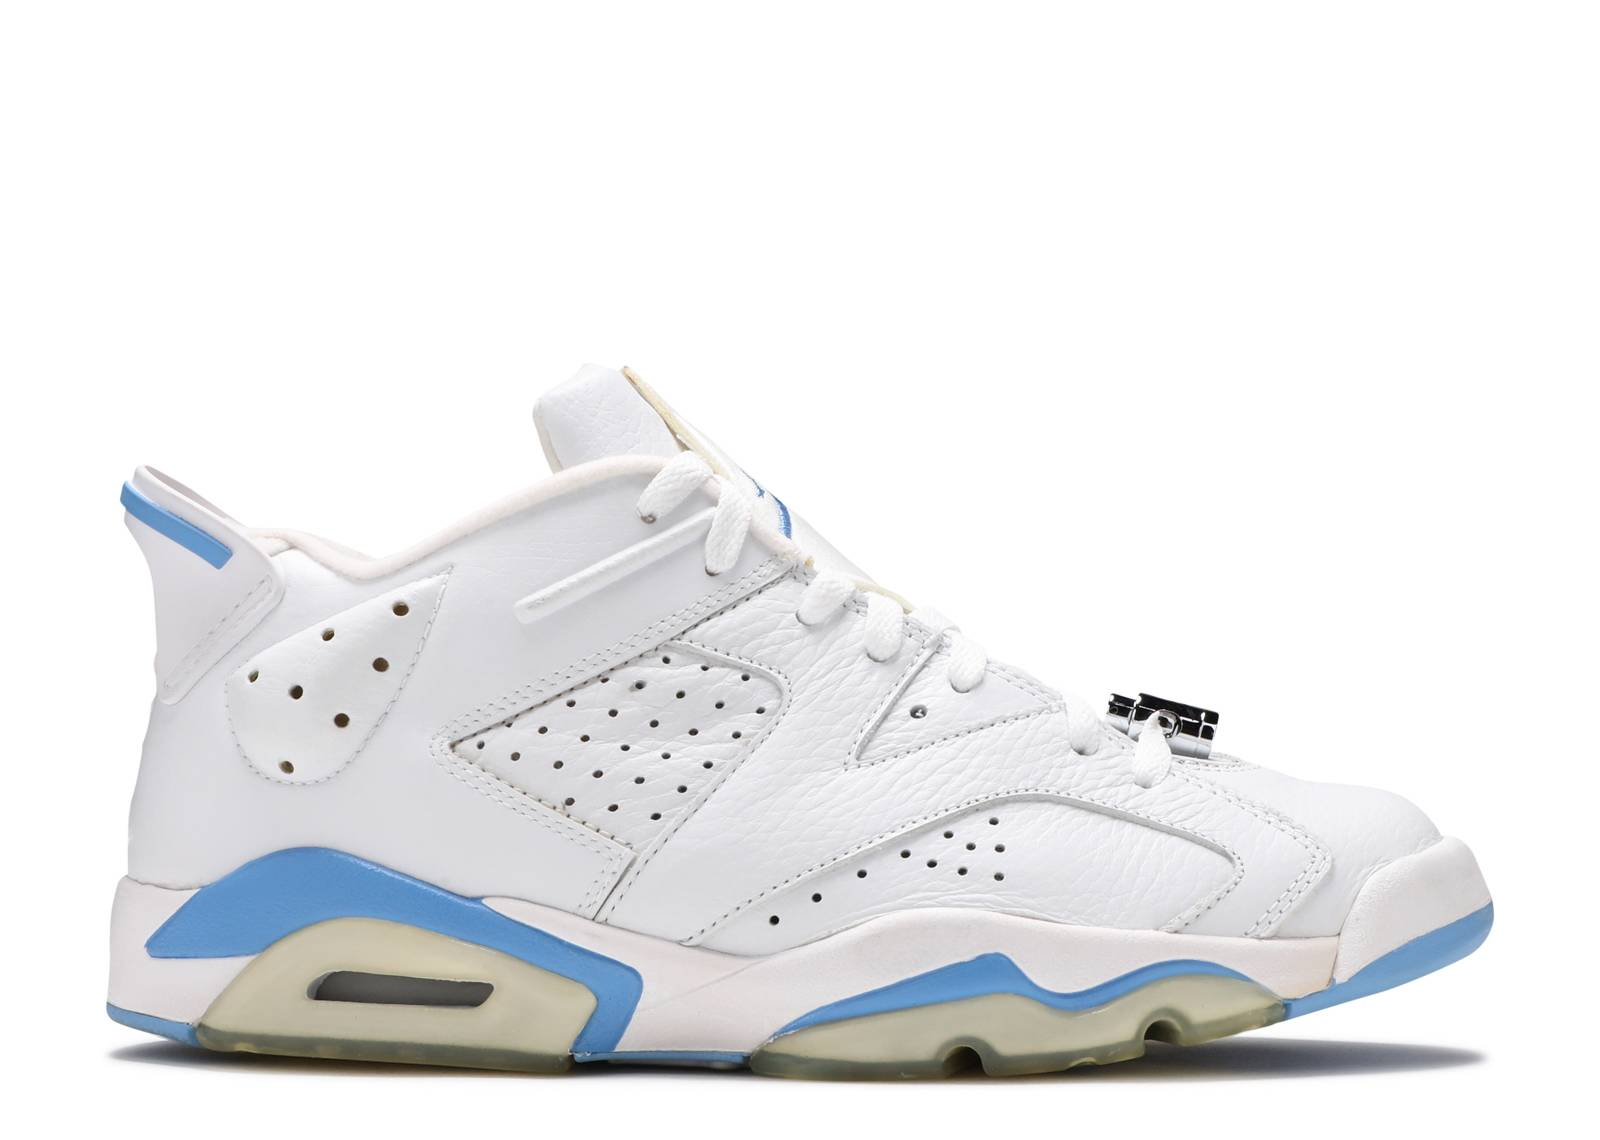 jordan 6 low blue and white